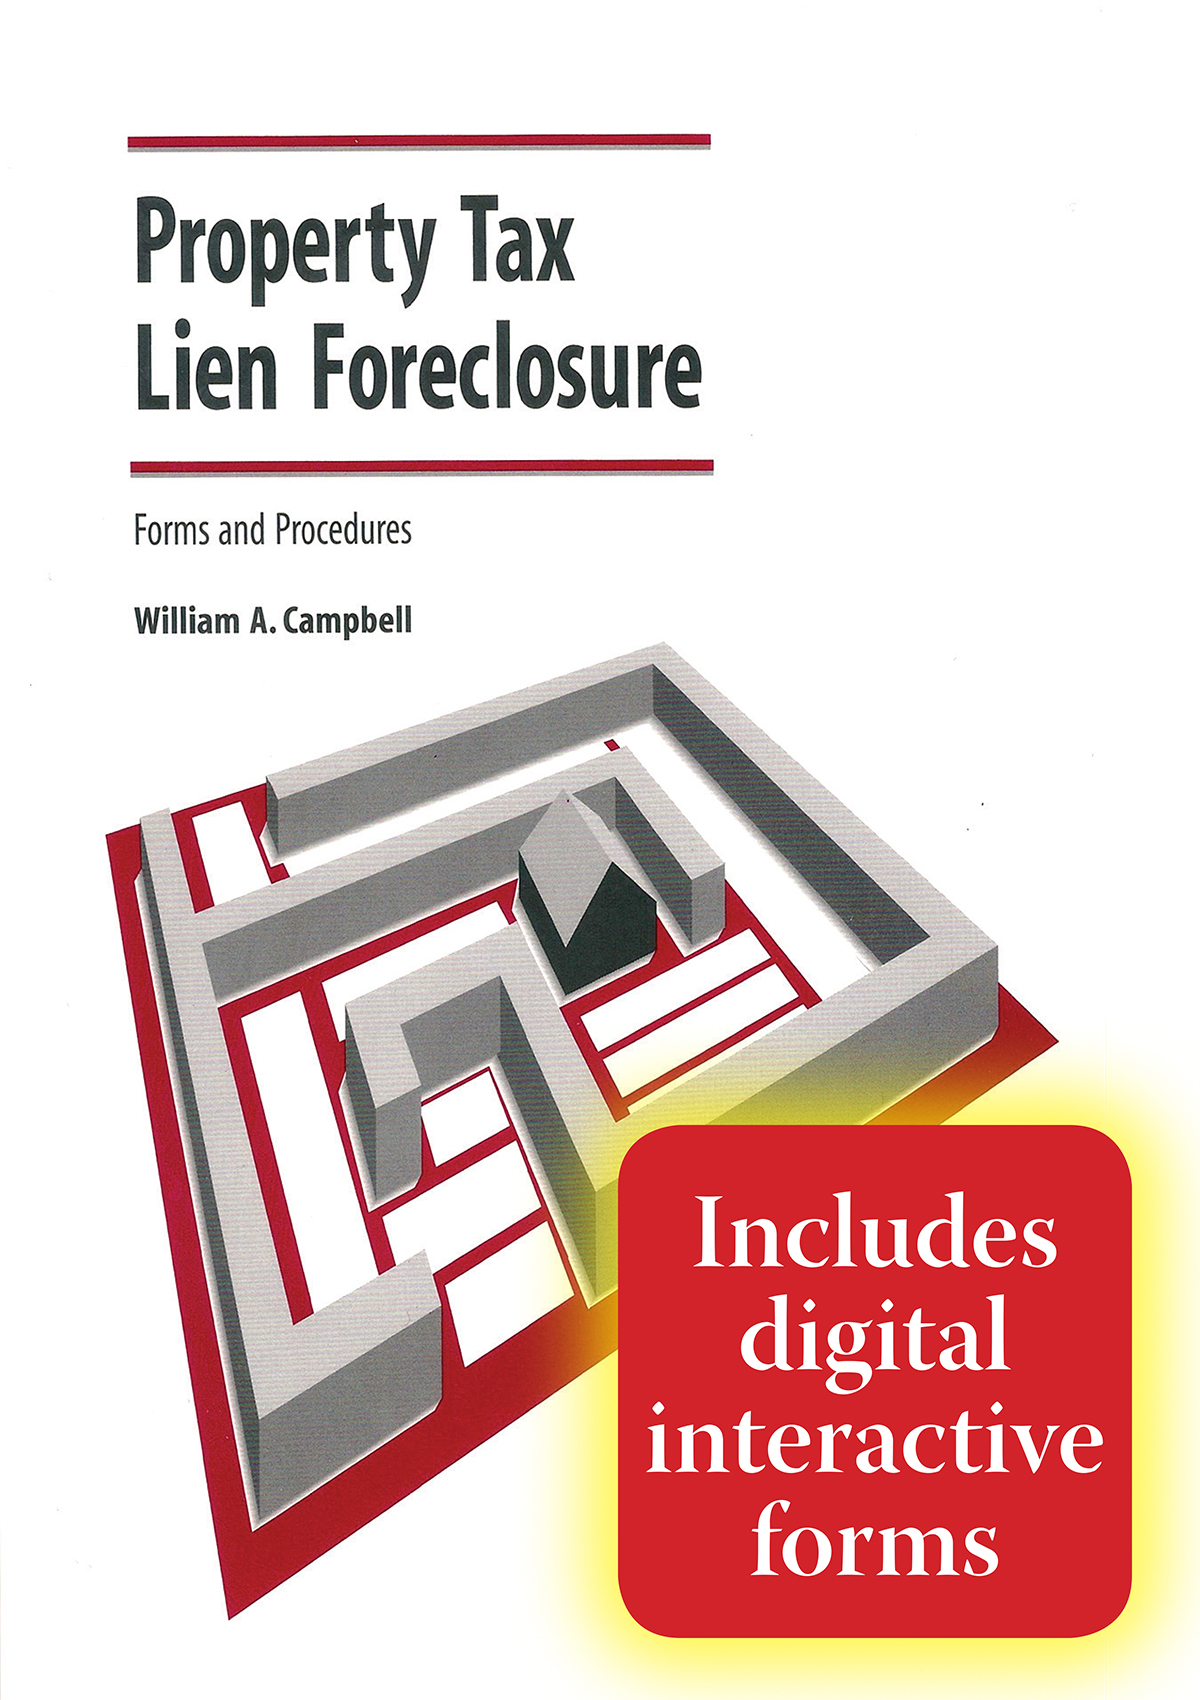 Cover image for Property Tax Lien Foreclosure Forms and Procedures